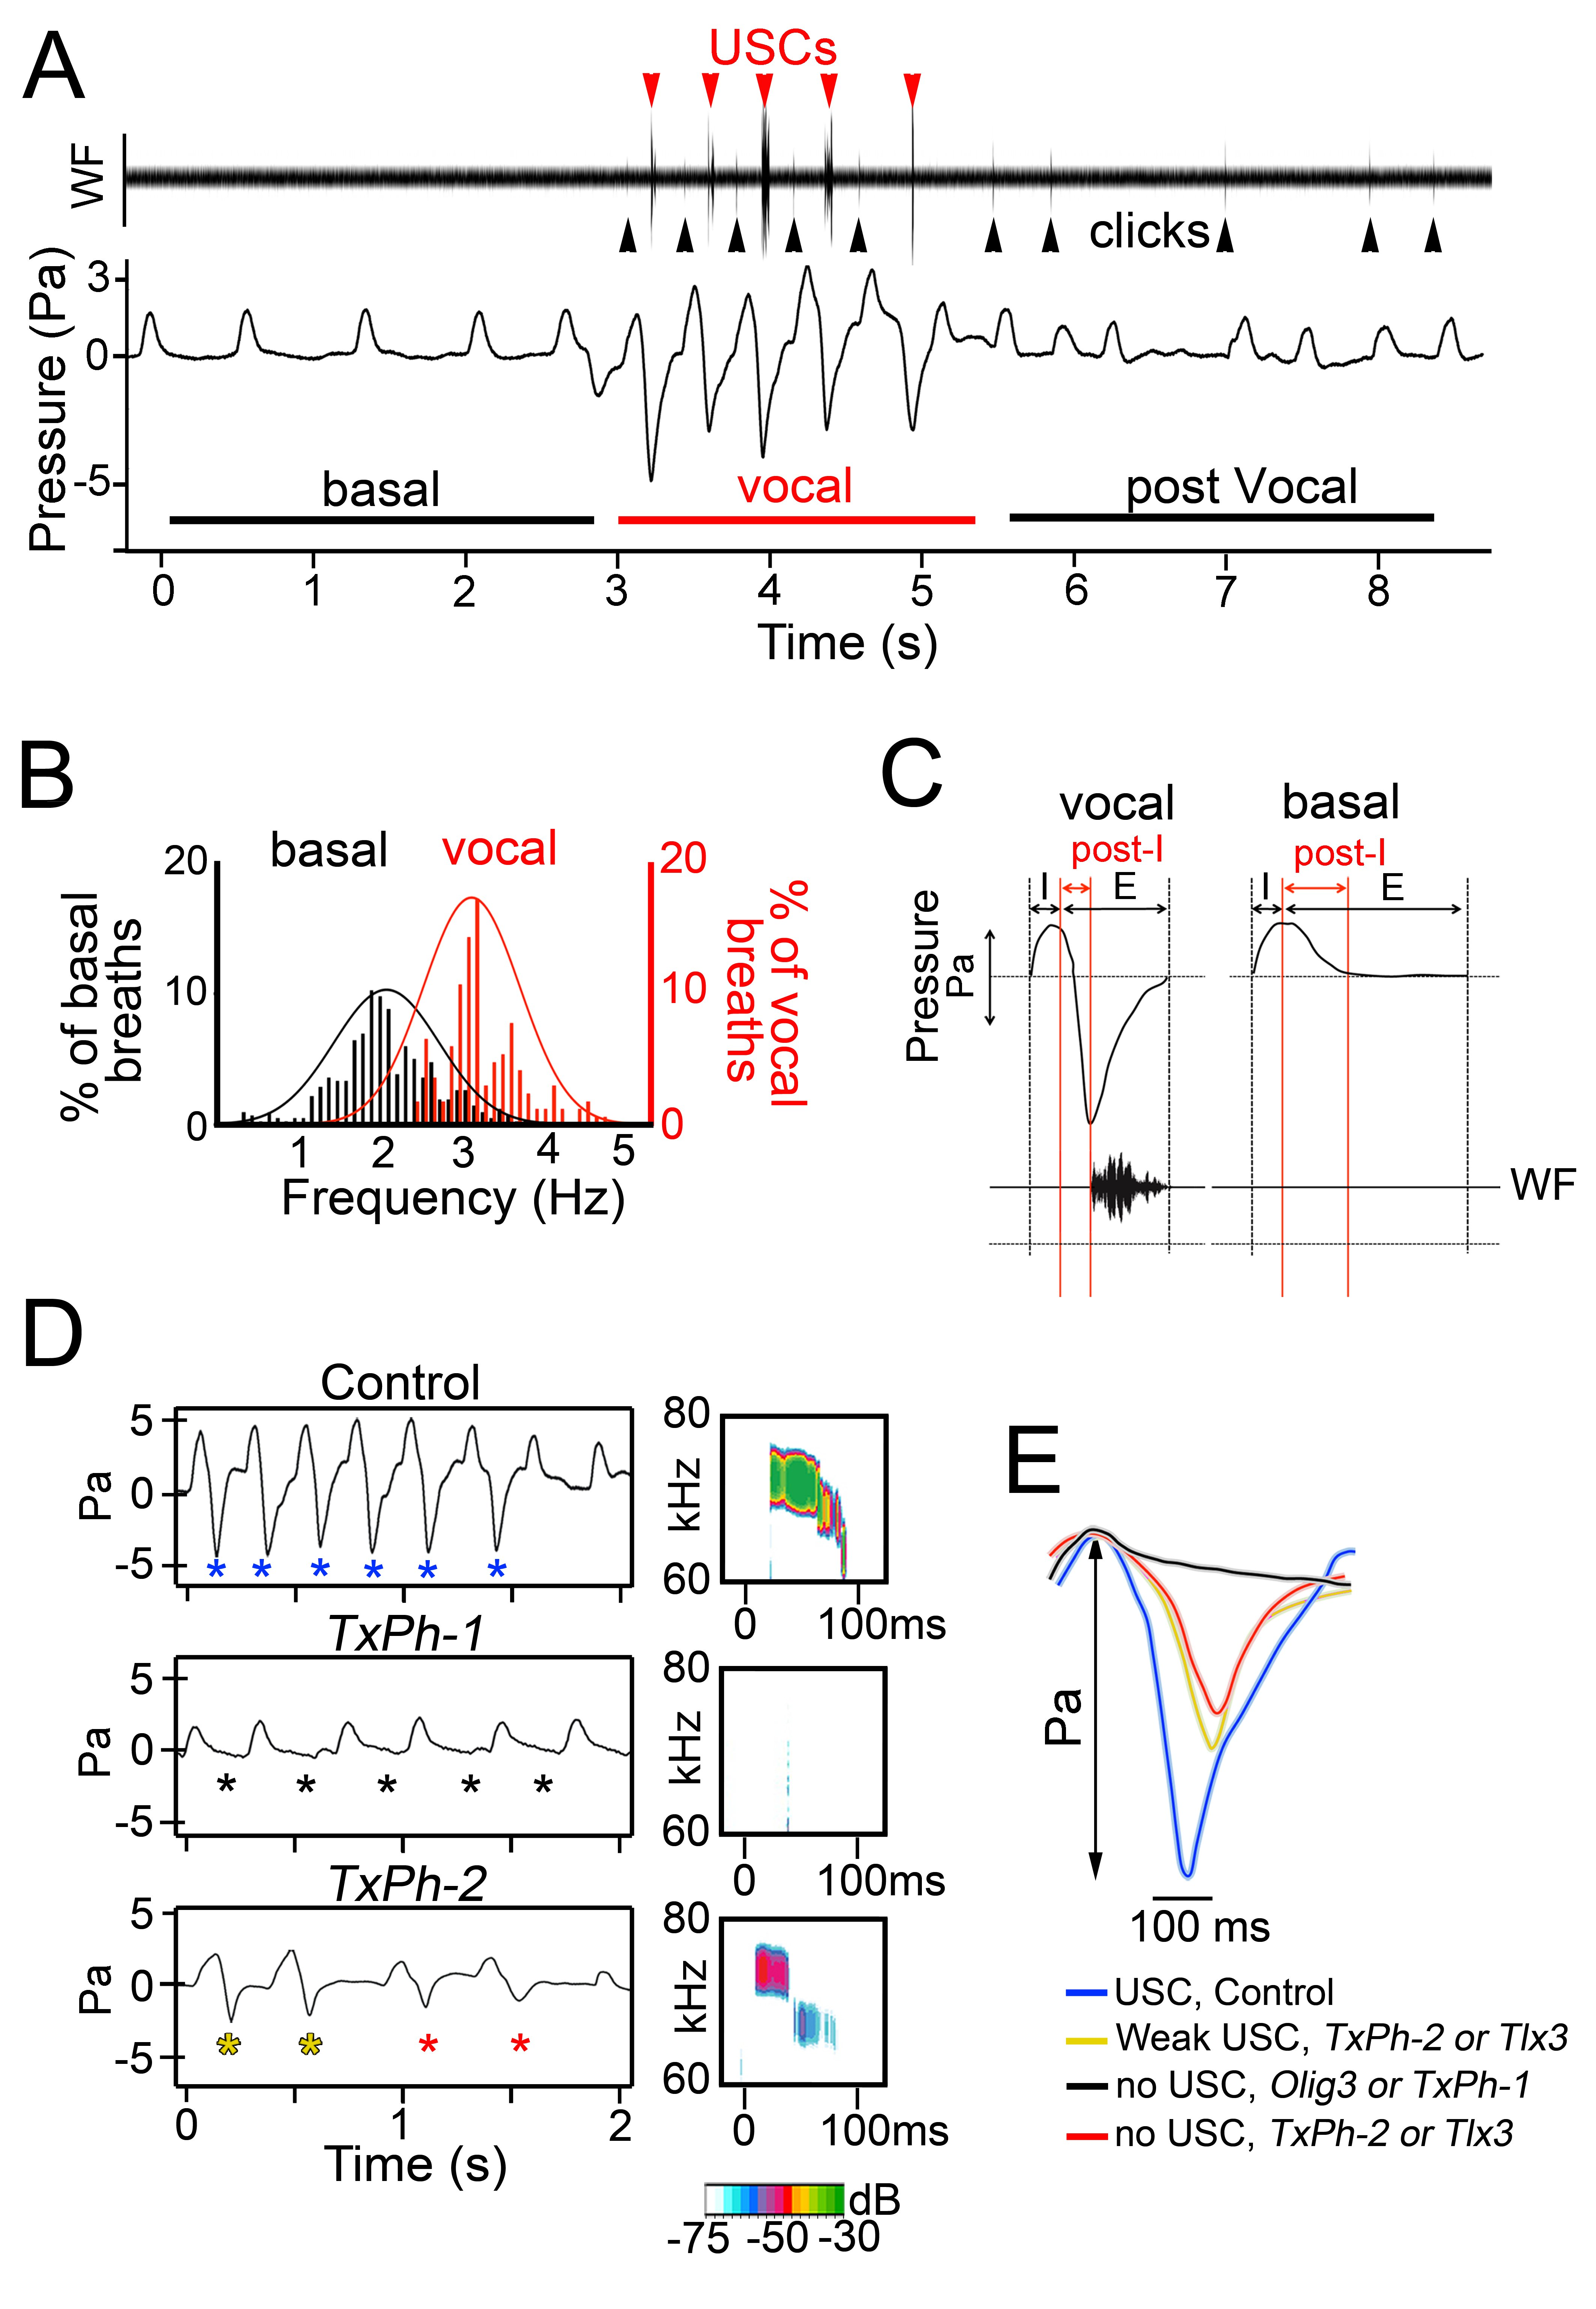 Figure 5. Vocal breathing behavior in mice that lack the nucleus of the solitary tract. (A) Waveform and plethysmographic traces illustrating basal and vocal breathing episodes in control mice. Red and black arrowheads point to USCs and clicks, respectively. (B) During vocalization, breathing frequencies change from about 2 Hz to more than 3 Hz. (C) Plethysmographic recording and waveforms (WF) during a representative vocal and a basal expiration. Inspiratory (I), expiratory (E), and post-inspiration phases (post-I, red lines) are indicated. Note that ultrasonic calls occur at the peak of post-inspiratory pressure activity during a vocal expiration (D) Left, plethysmographic recordings of control, TxPh-1, and TxPh-2 mice. Blue asterisks indicate expirations of control mice that produced USCs. Black asterisks indicate expirations of TxPh-1 mice that produce no USCs. Red and yellow asterisks indicate expirations of TxPh-2 mice that produced no calls or weak calls, respectively. Right, spectrograms from control, TxPh-1 and TxPh-2 mice. Note that only clicks are observed in TxPh-1 mice. Sound intensity (in dB) is color-coded. (E) Representative plethysmographic traces of individual post-inspiratory phases in control (blue), Olig3−/−, and TxPh-1 mice (indistinguishable, shown together in black), as well as TxPh-2 or Tlx3−/− mice that were associated with weak or no calls are shown in yellow and red, respectively. Panels A-E were adapted from Hernandez-Miranda et al., 2017.